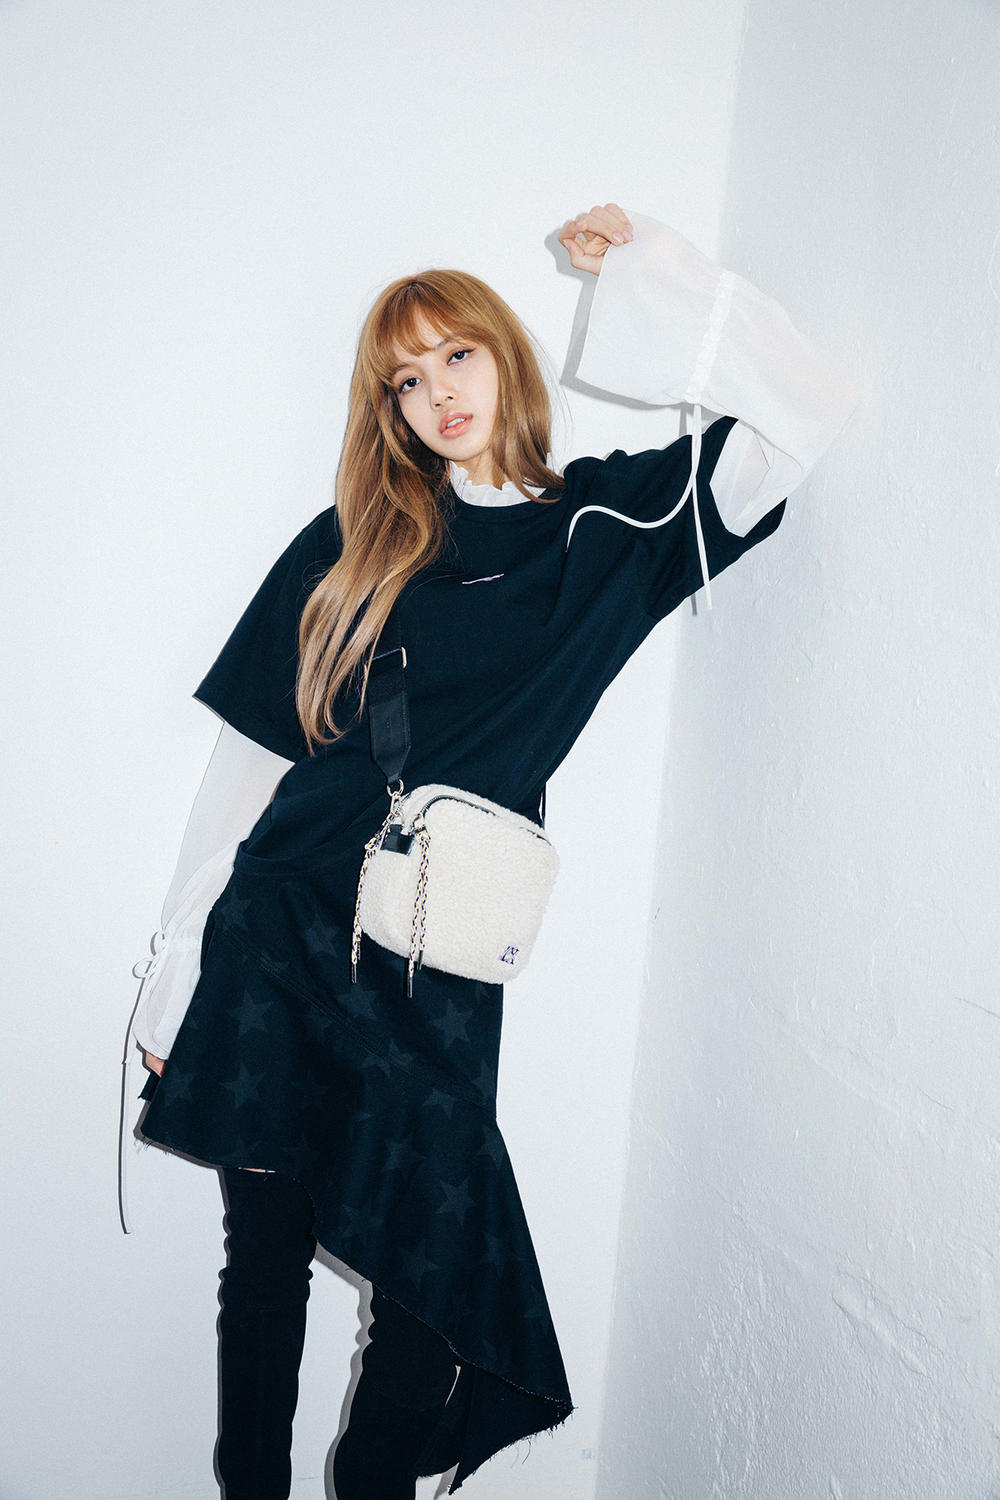 X-Girl Nonagon Blackpink Lisa Campaign Collaboration K-Pop Denim Skirt Black T-Shirt